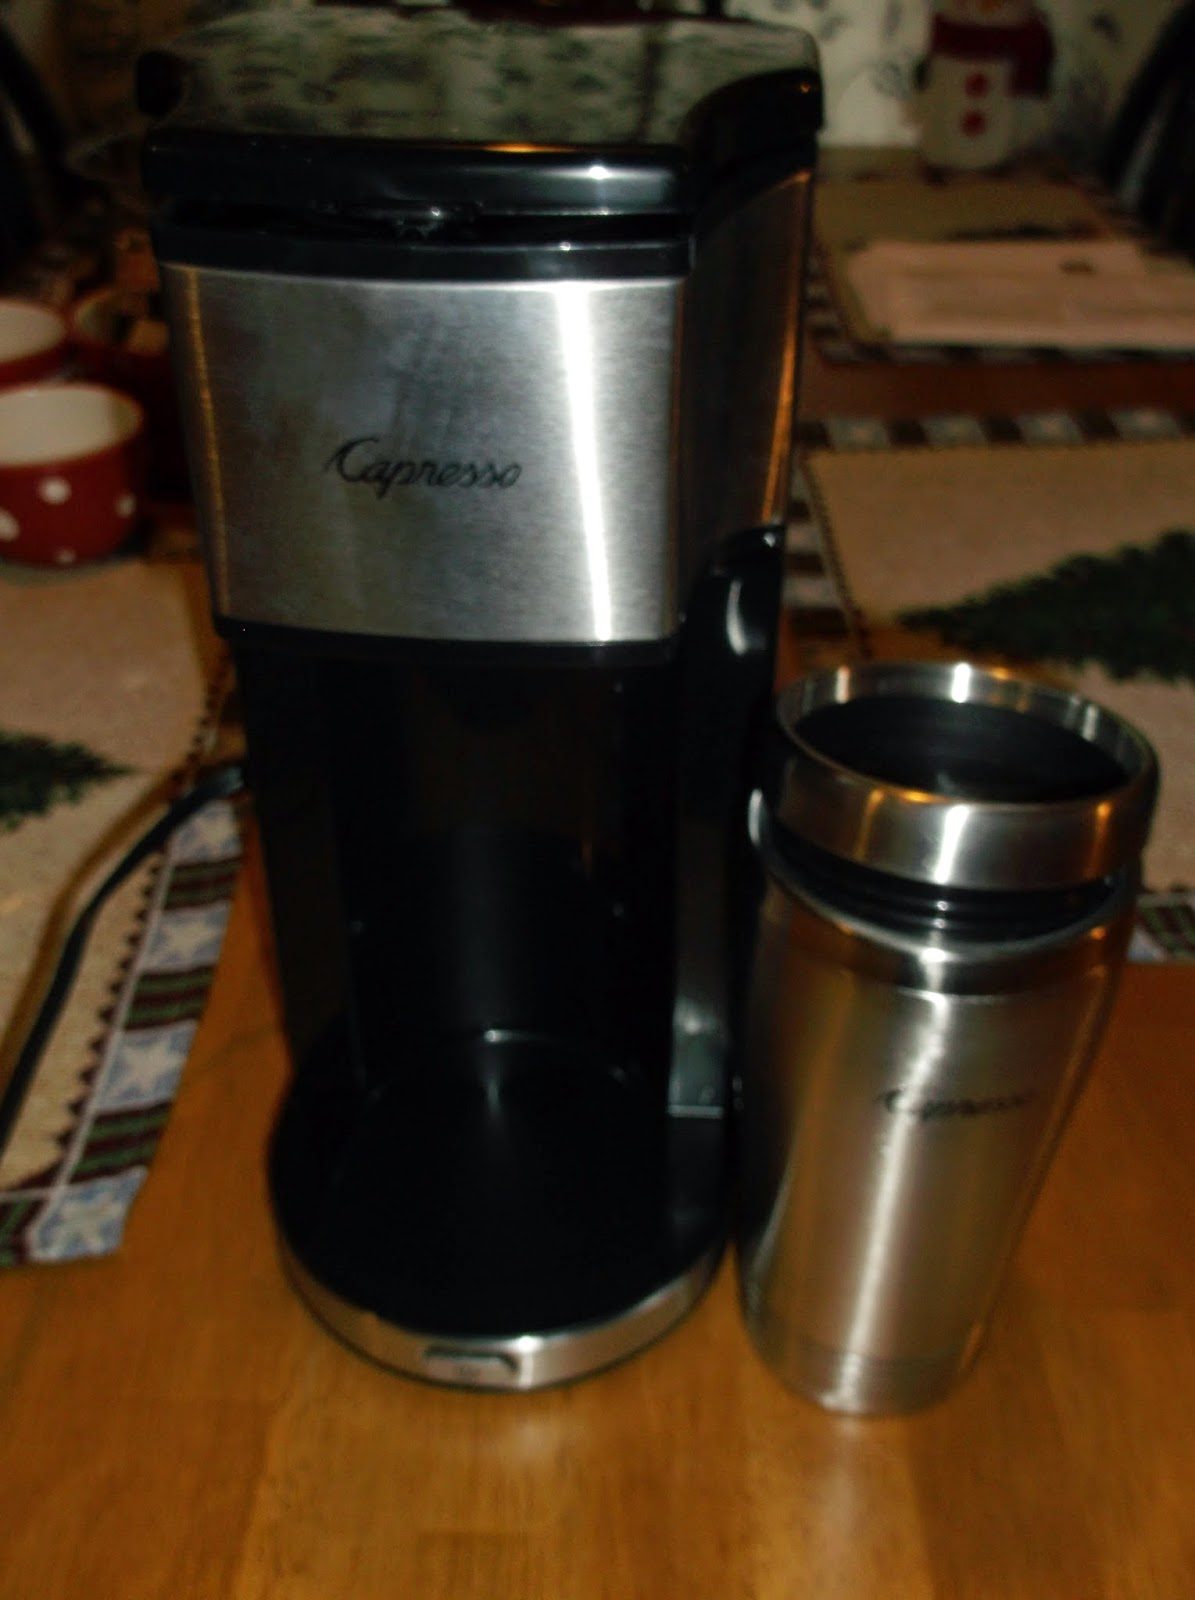 Missys Product Reviews Capresso On The Go Coffee Maker Review